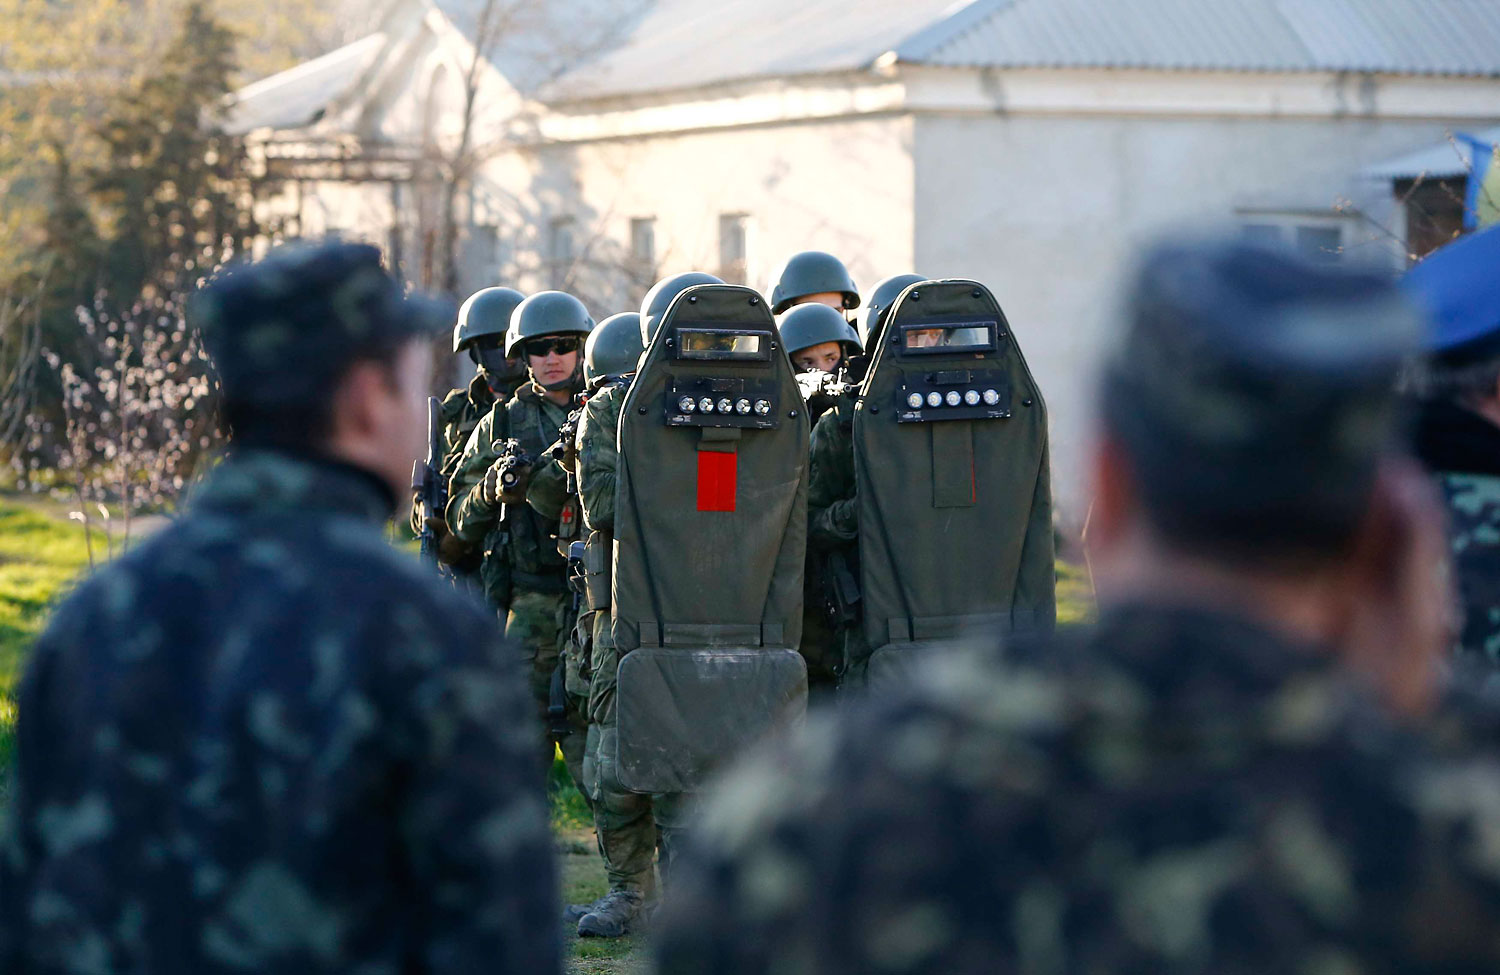 Armed men, believed to be Russian servicemen, stand guard, with Ukrainian servicemen seen in the foreground, at a military airbase, in the Crimean town of Belbek near Sevastopol March 22, 2014.